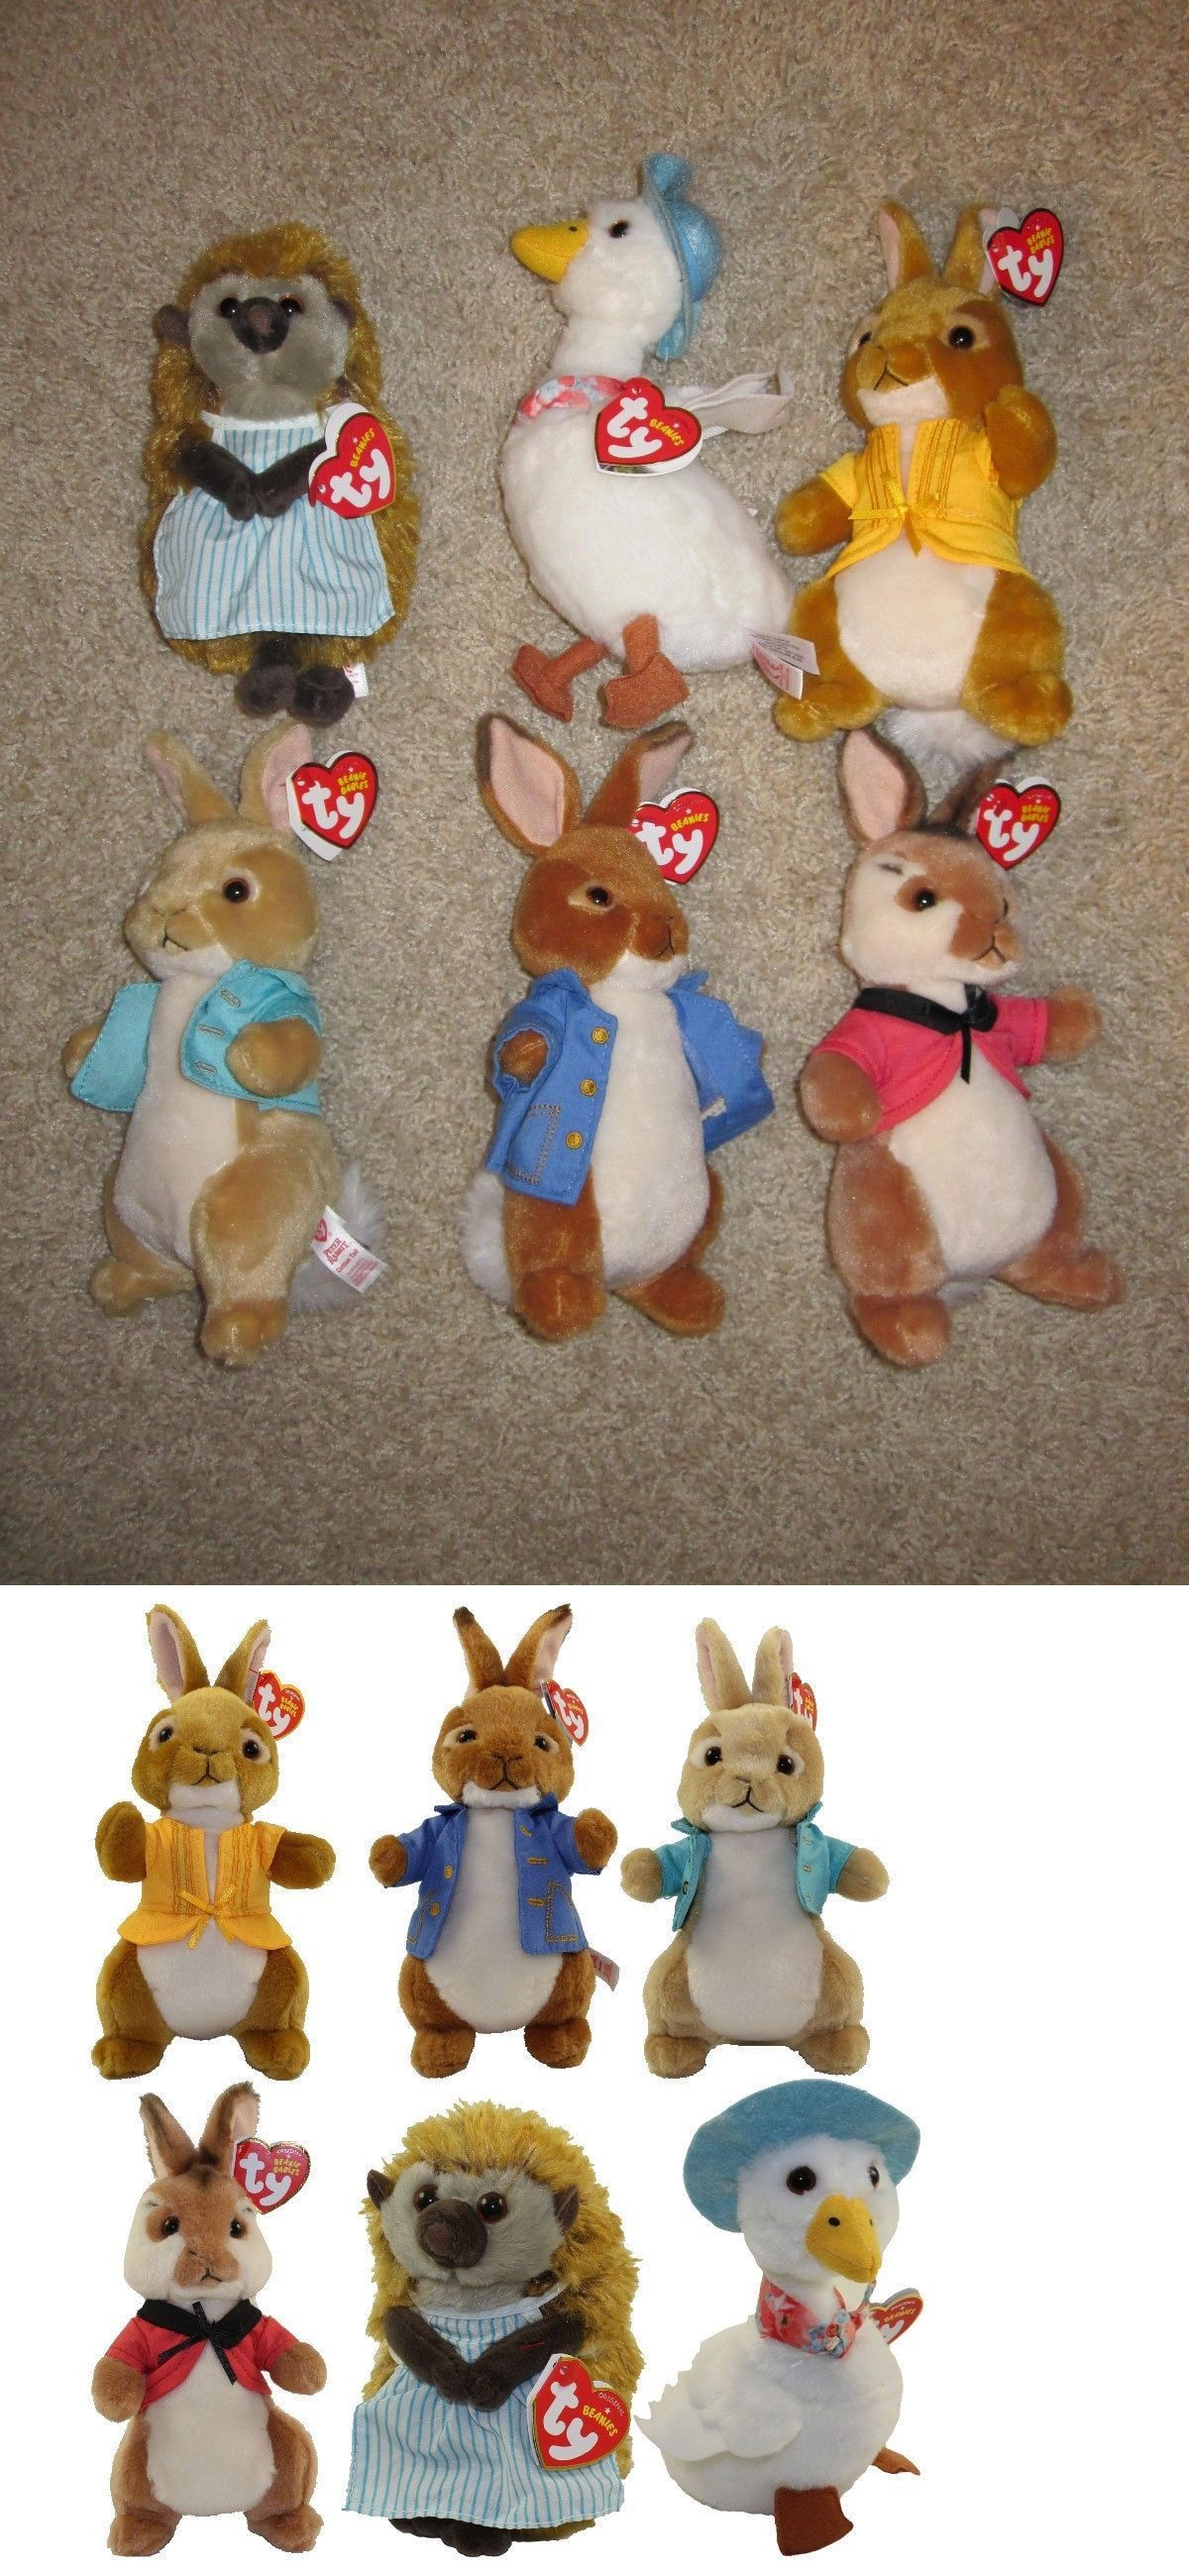 ac5e881f6a0 Current 165959  Ty Beanie Babies Peter Rabbit Movie Full Set Of 6 Benjamin  Cotton Tail